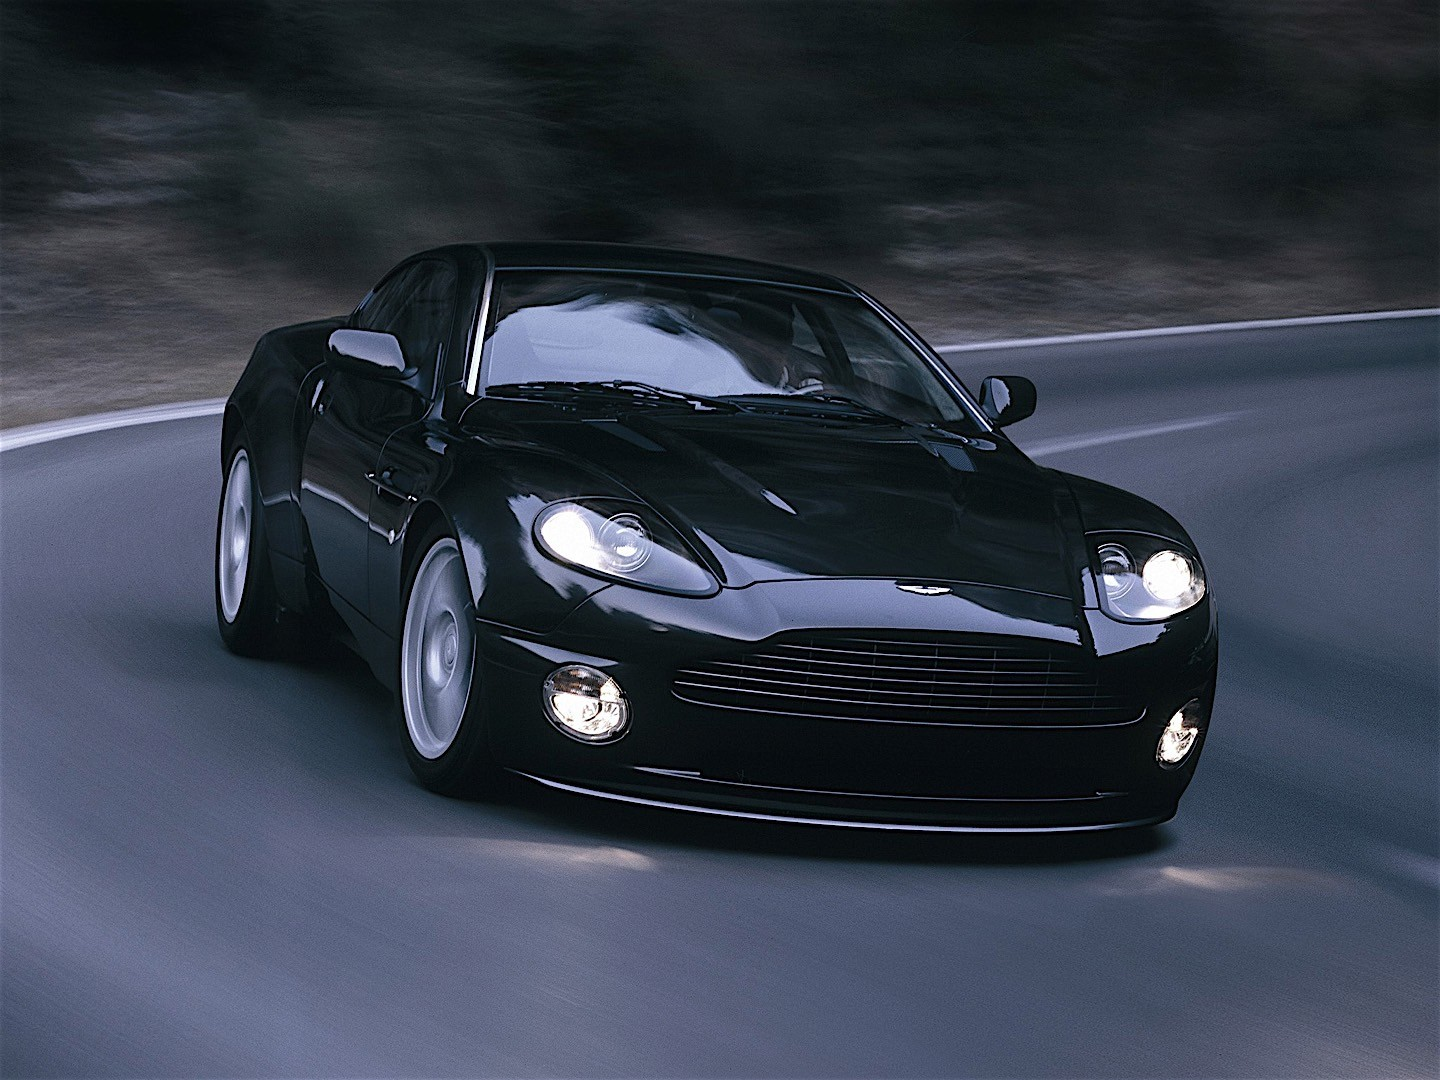 aston martin vanquish s specs 2004 2005 2006 2007 autoevolution. Black Bedroom Furniture Sets. Home Design Ideas